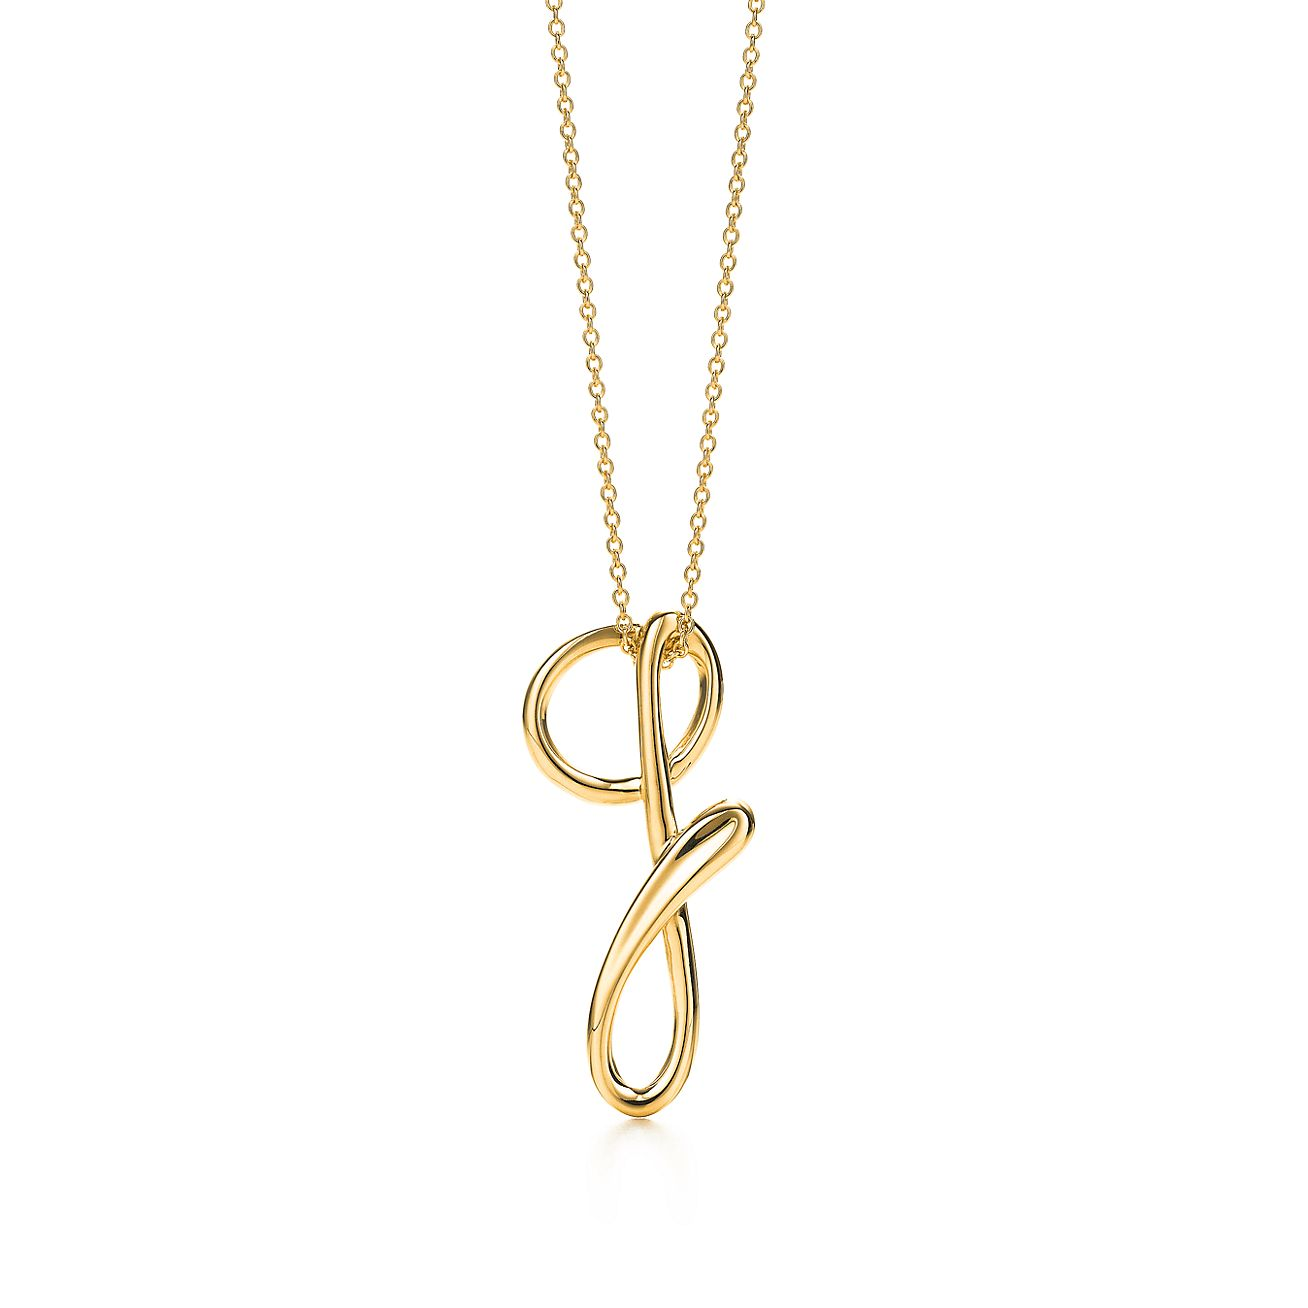 G Jewellery Silver Necklace Gift for her Letter G Pendant G necklace Silver necklace Alphabet Necklace G jewellery Letter Necklace